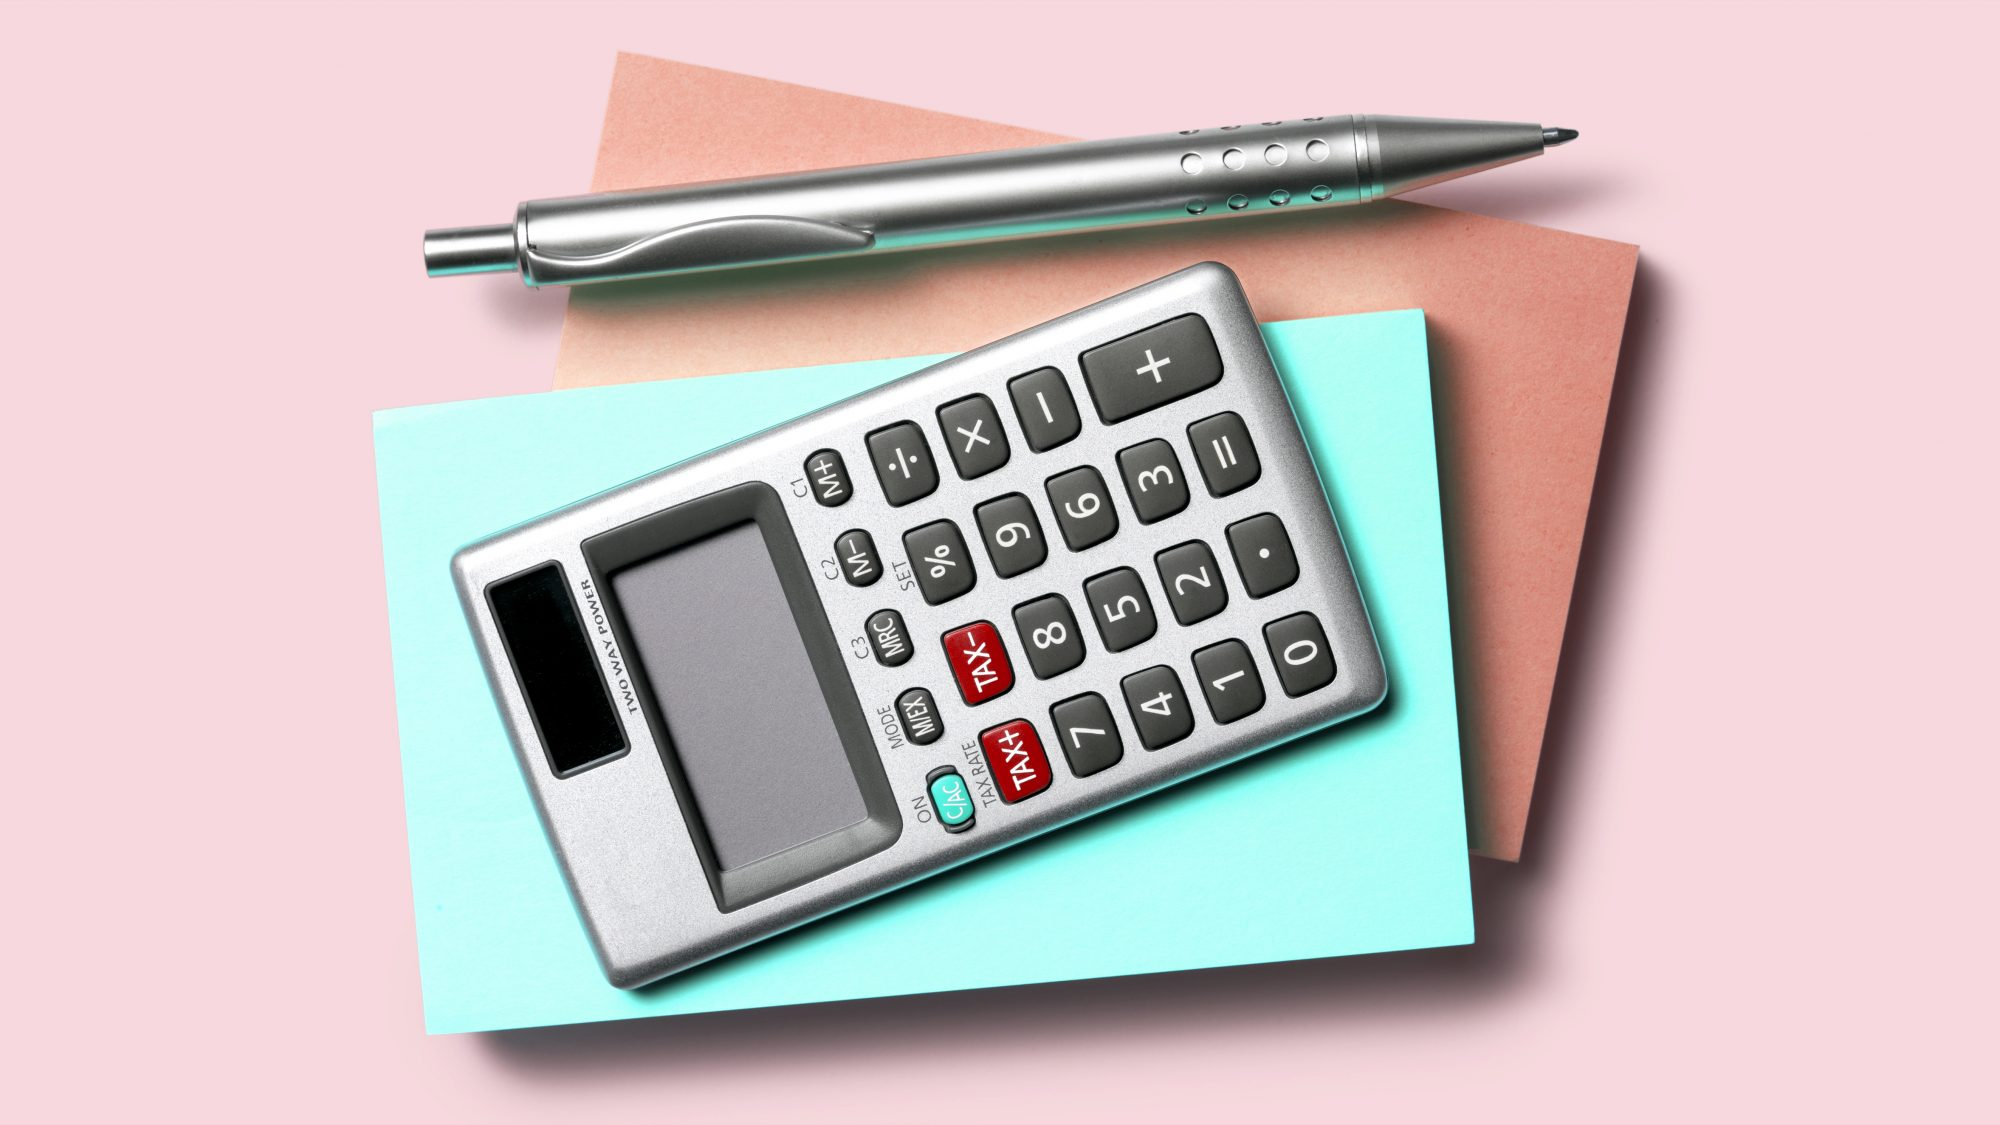 How to budget money - guide to budgeting